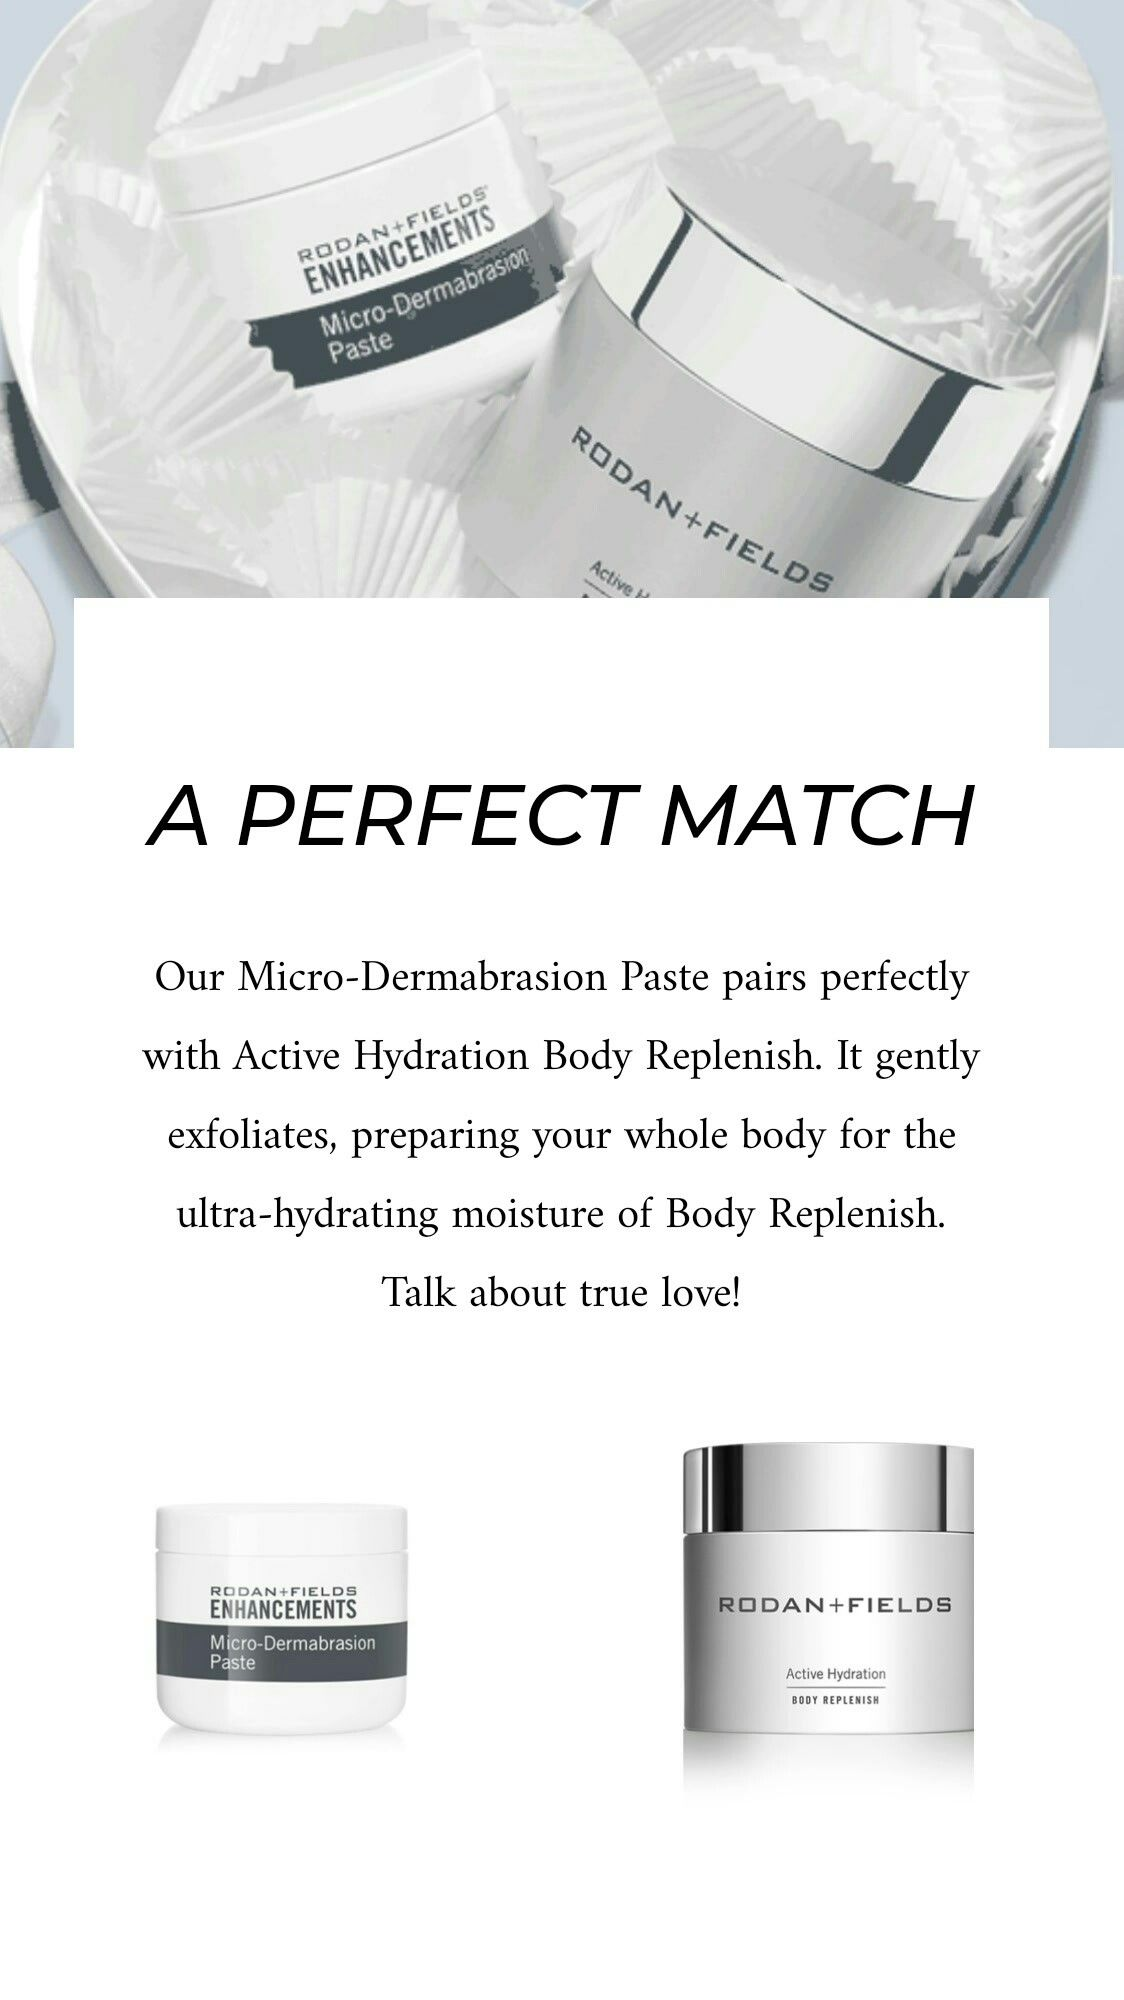 Microdermabrasion Paste And Active Hydration Body Replenish Are